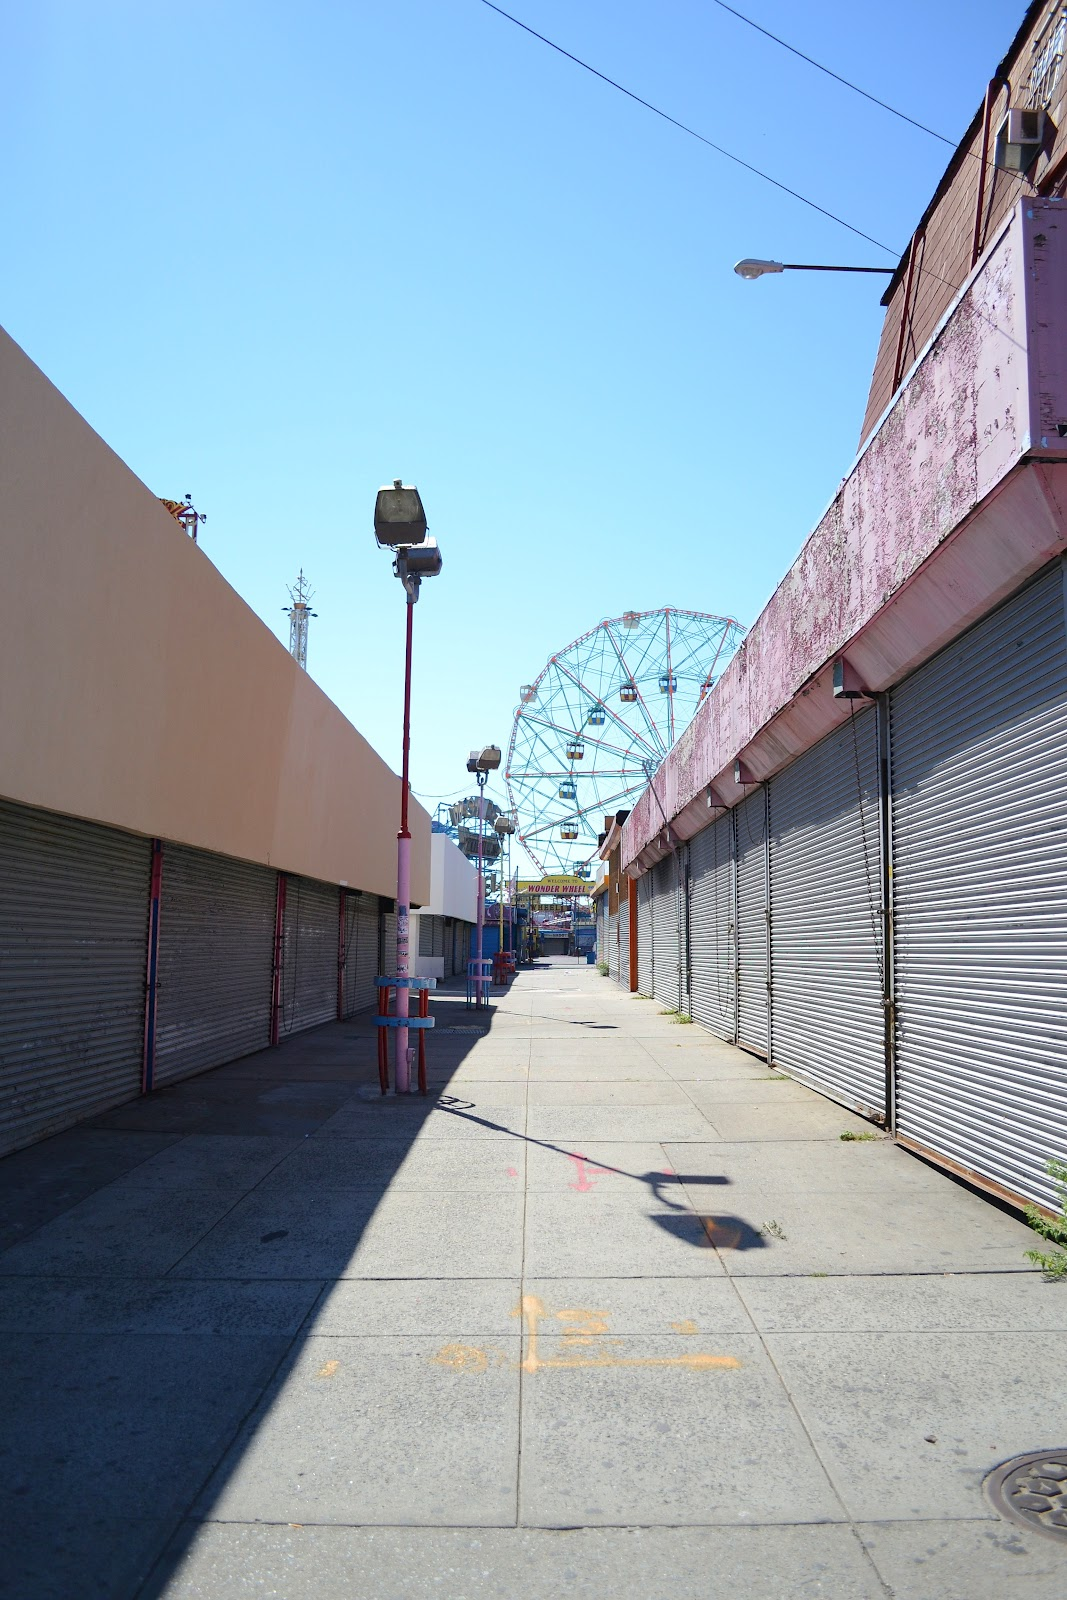 deserted funfair coney island